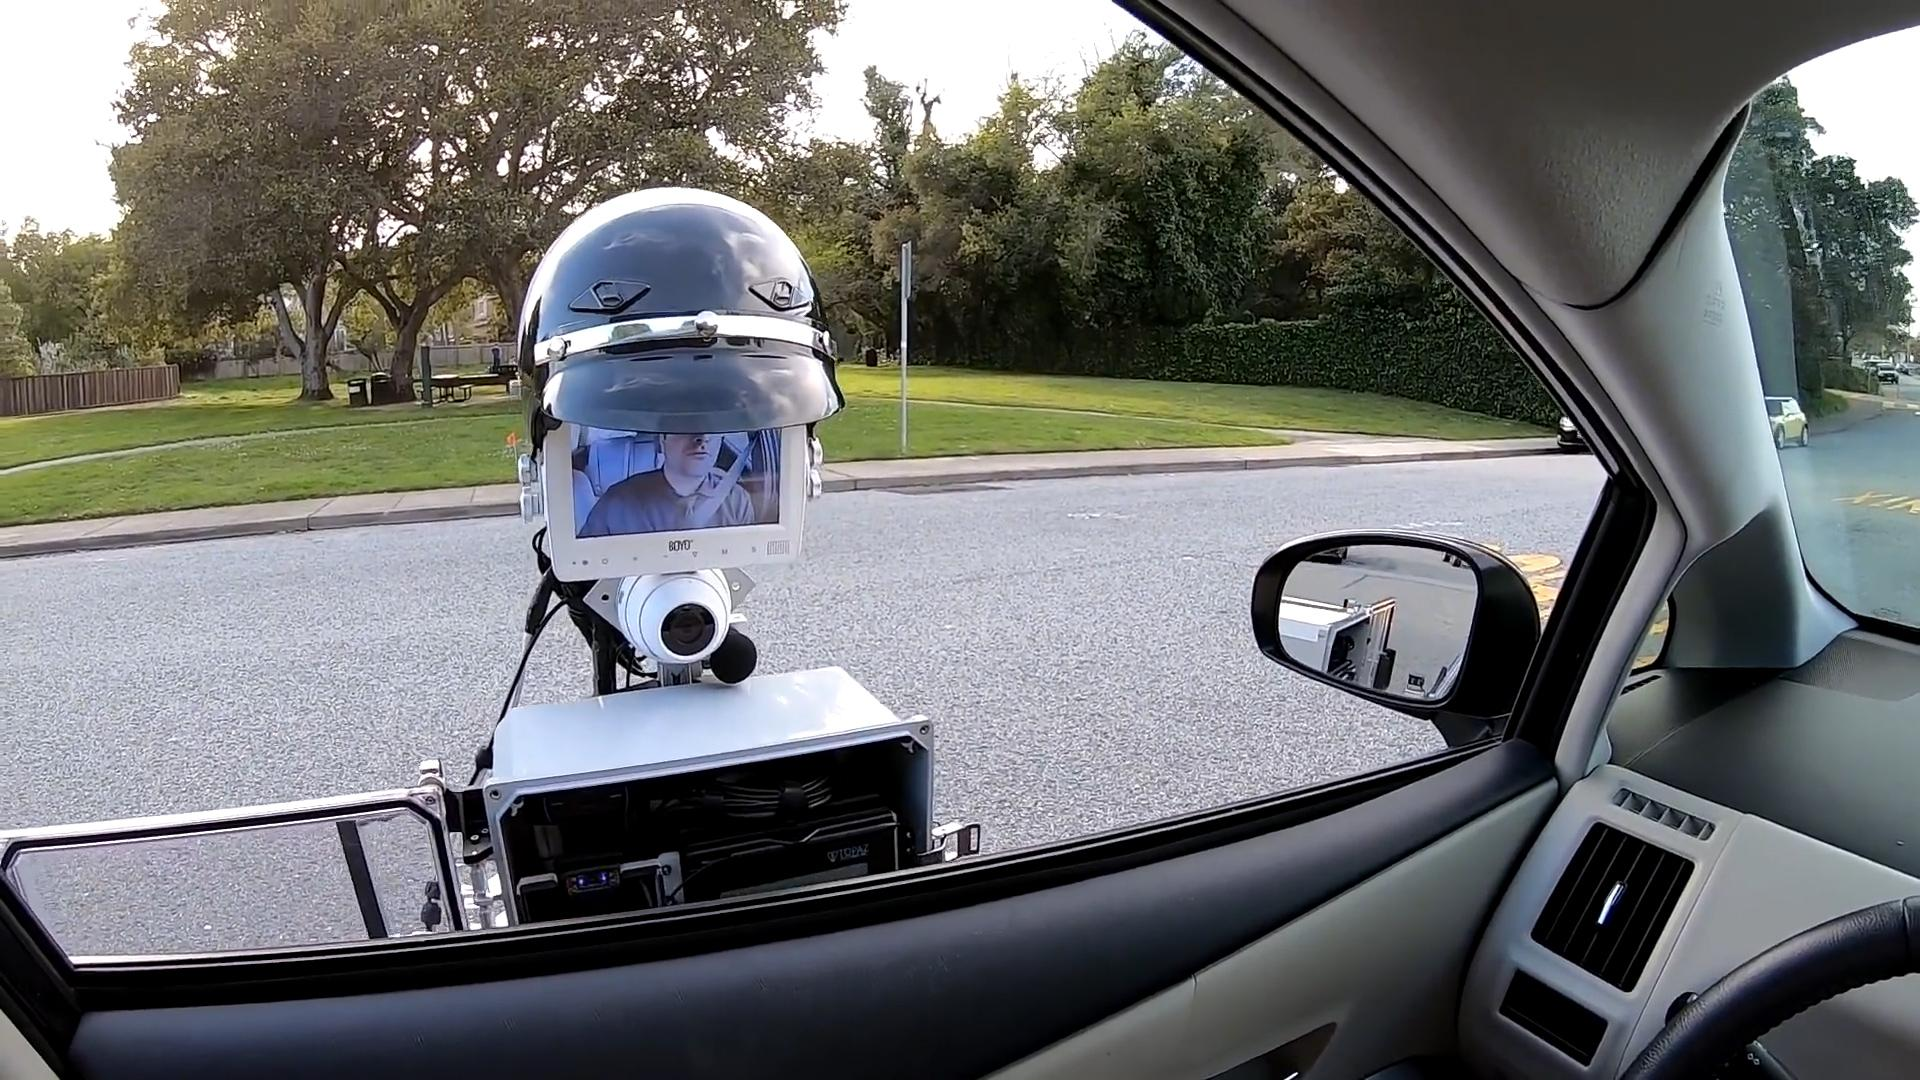 This new police robot could make traffic stops safer for everyone